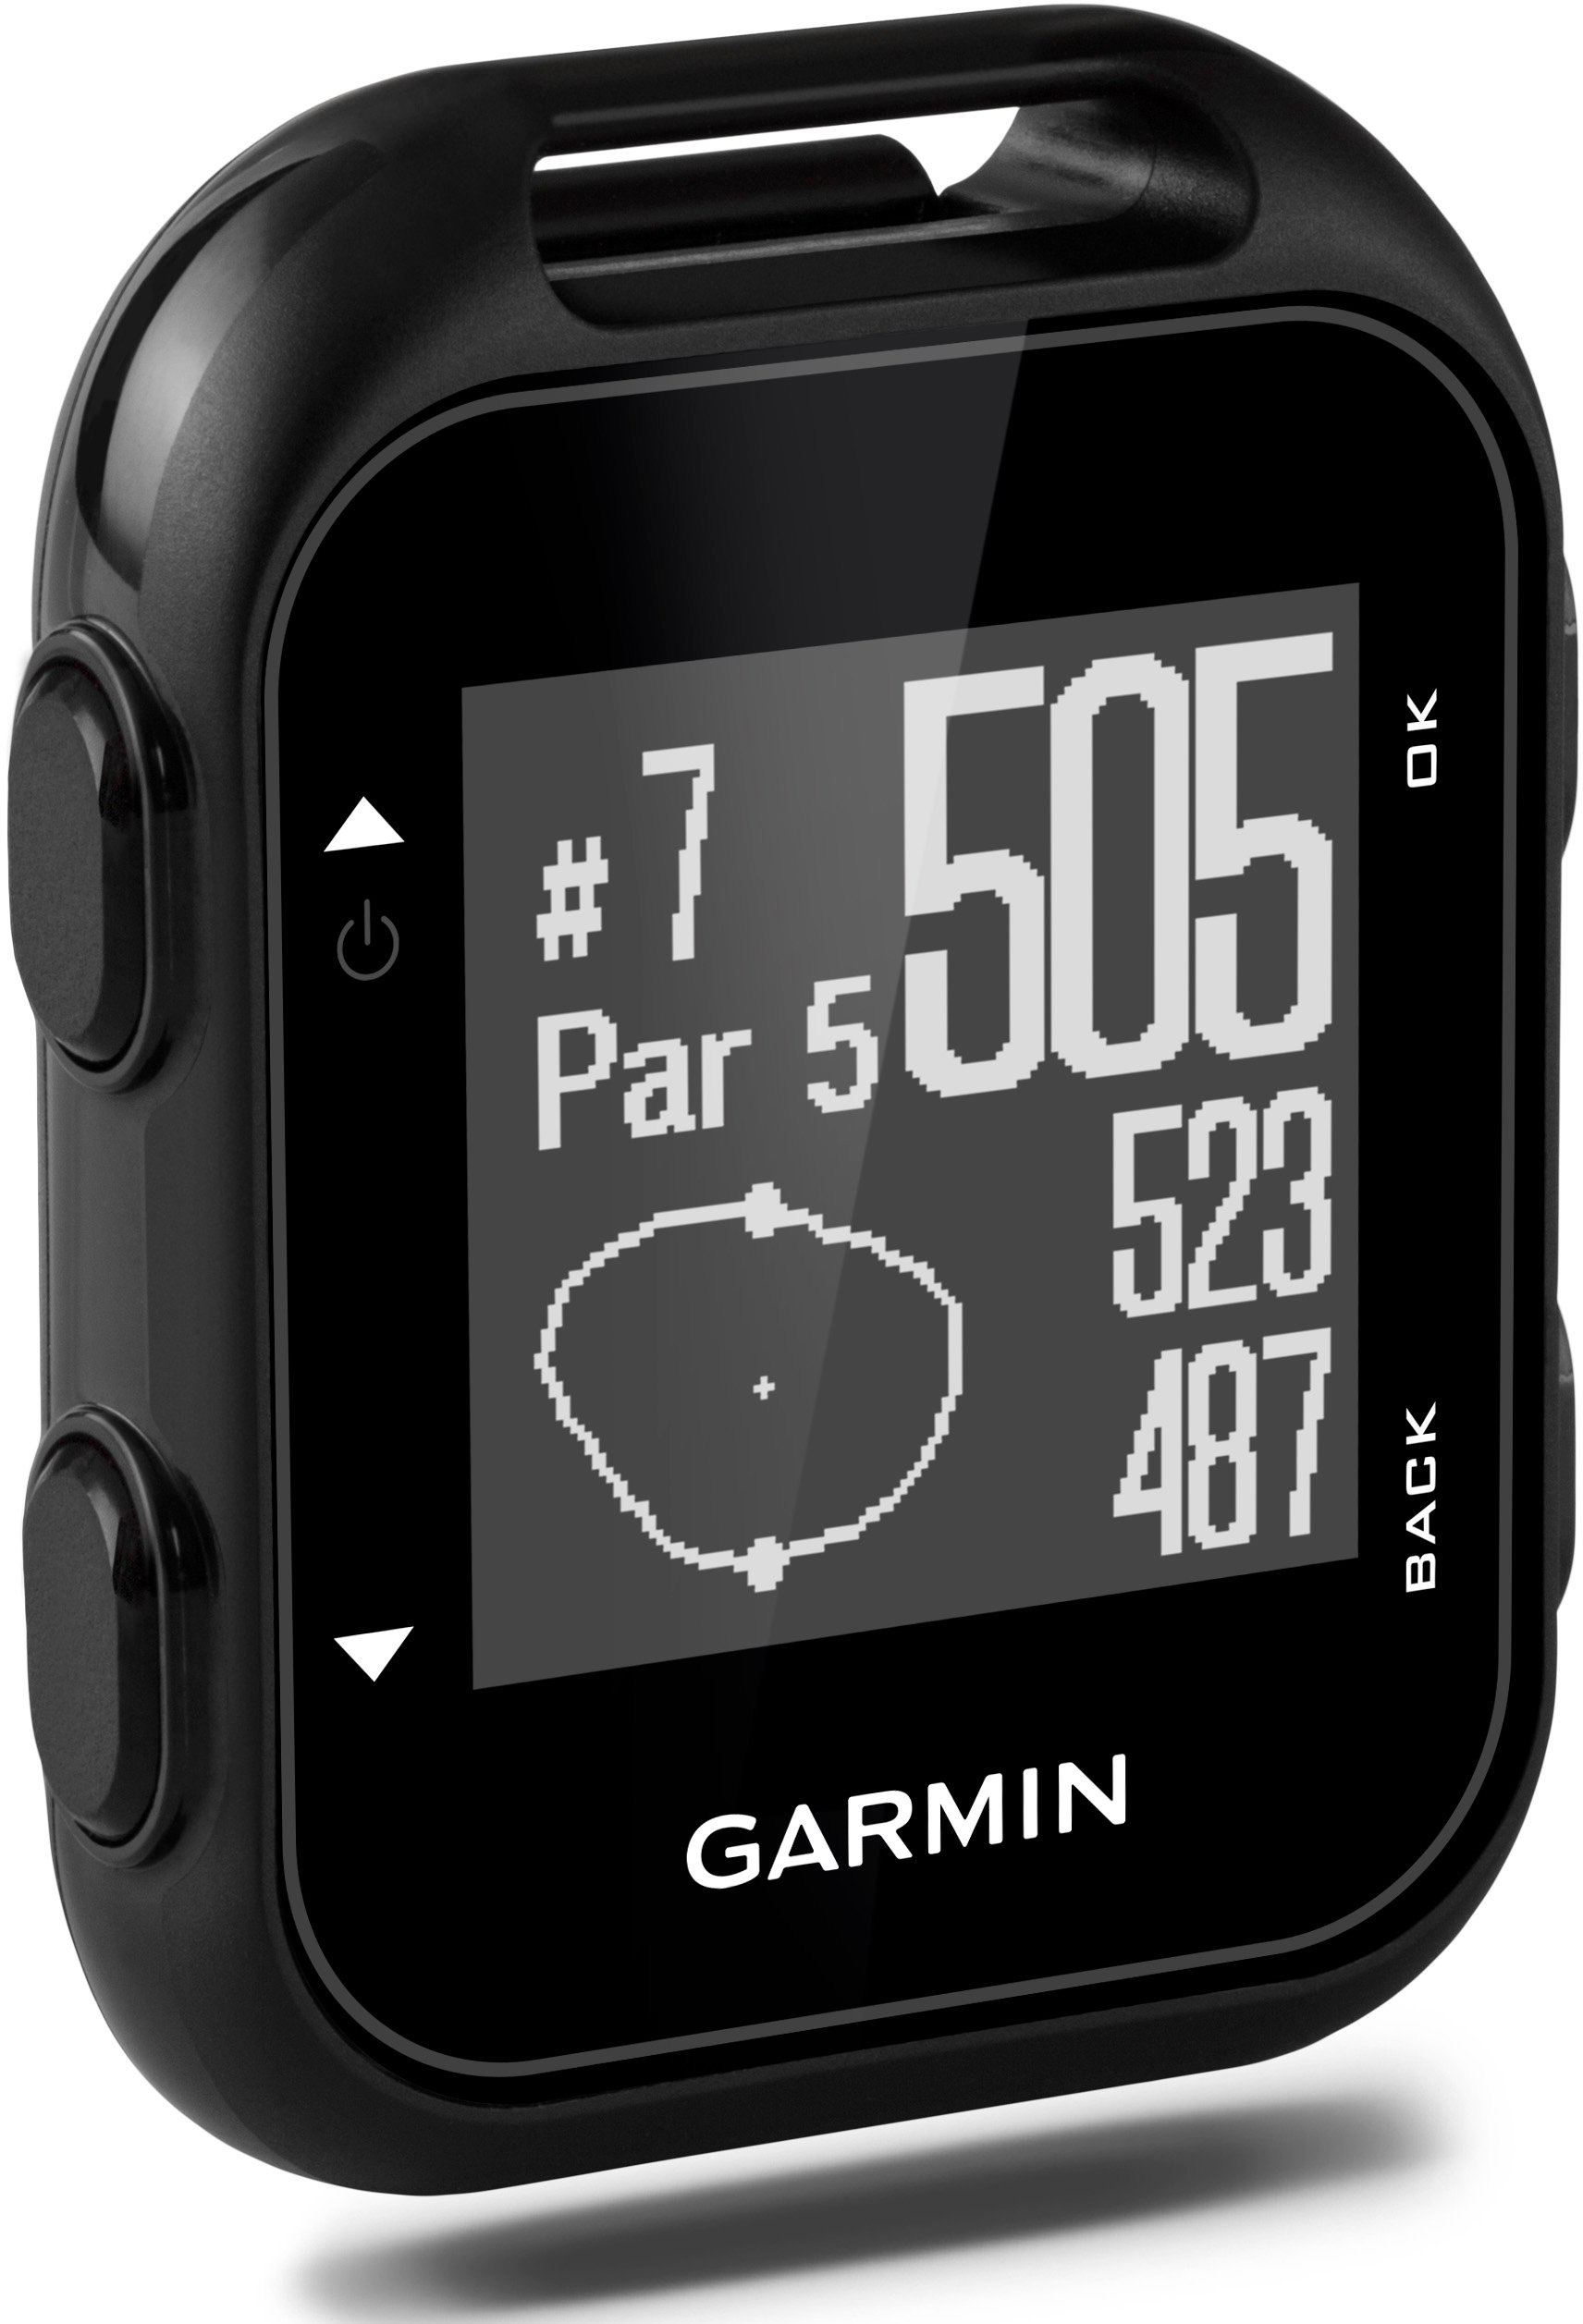 Garmin Approach G10, Compact and Handheld Golf GPS with 1.3-inch Display by Garmin